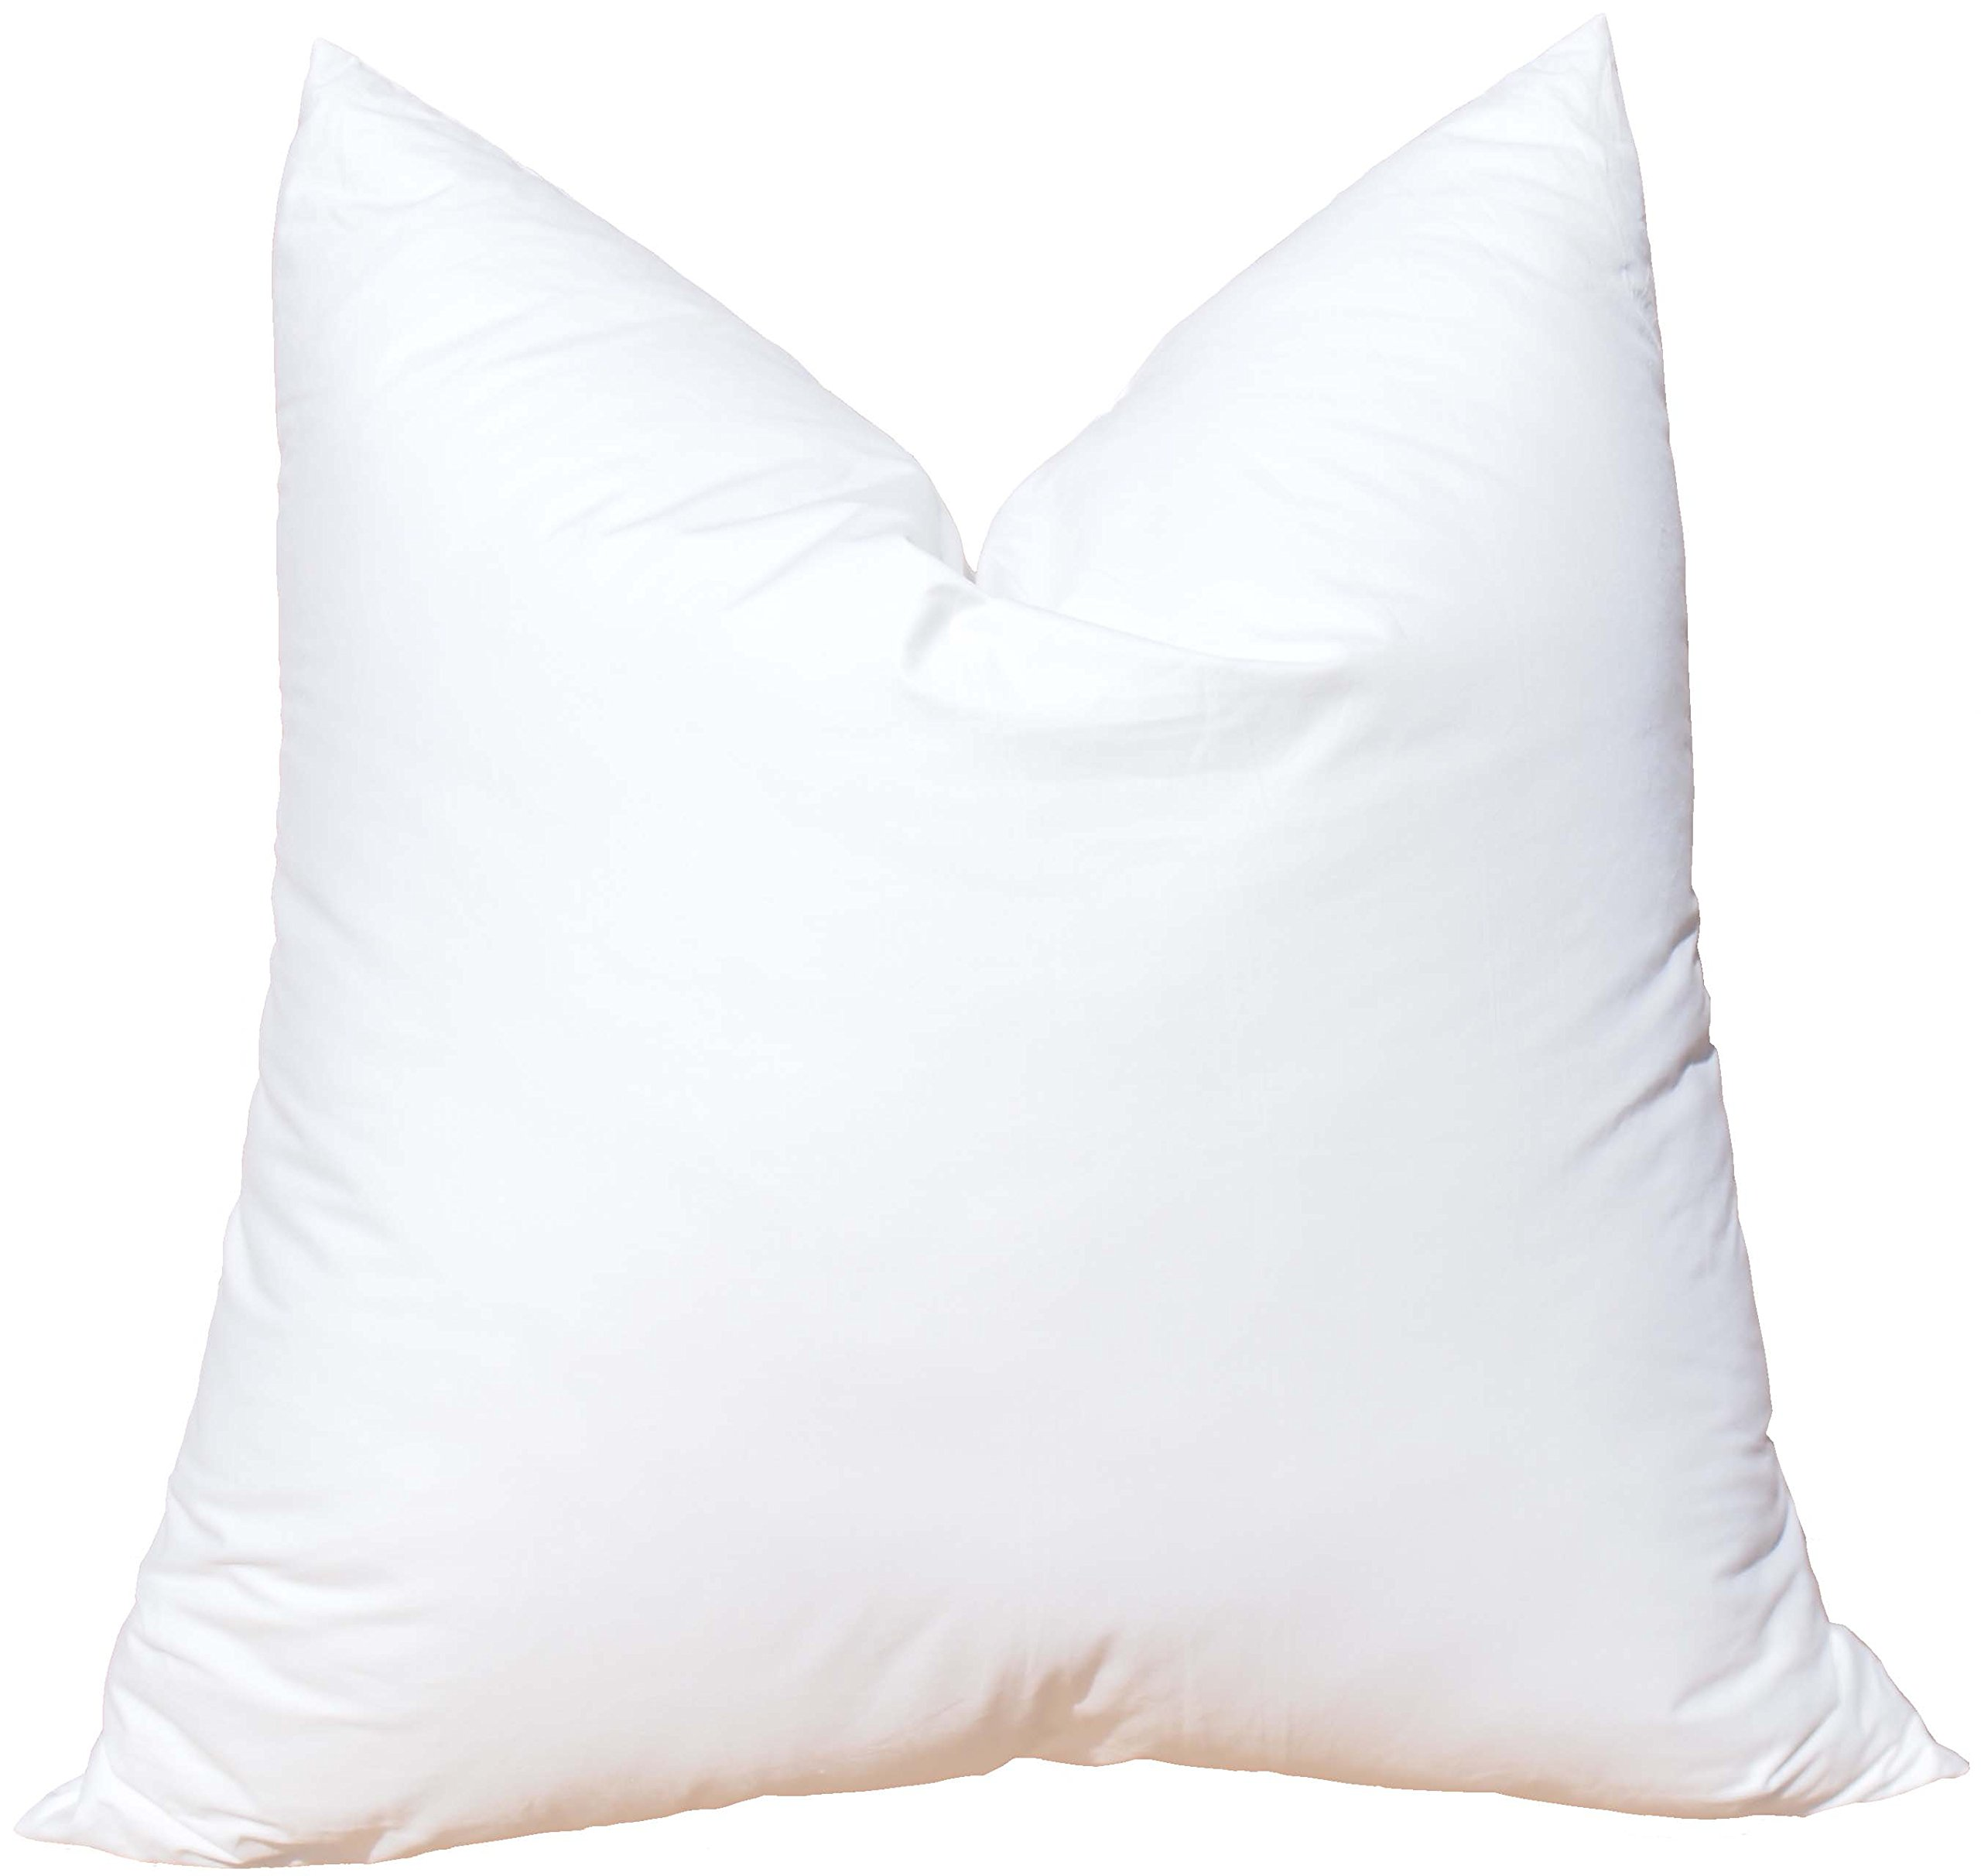 Pillowflex Synthetic Down Pillow Insert for Sham Aka Faux/Alternative (28 Inch by 28 Inch)